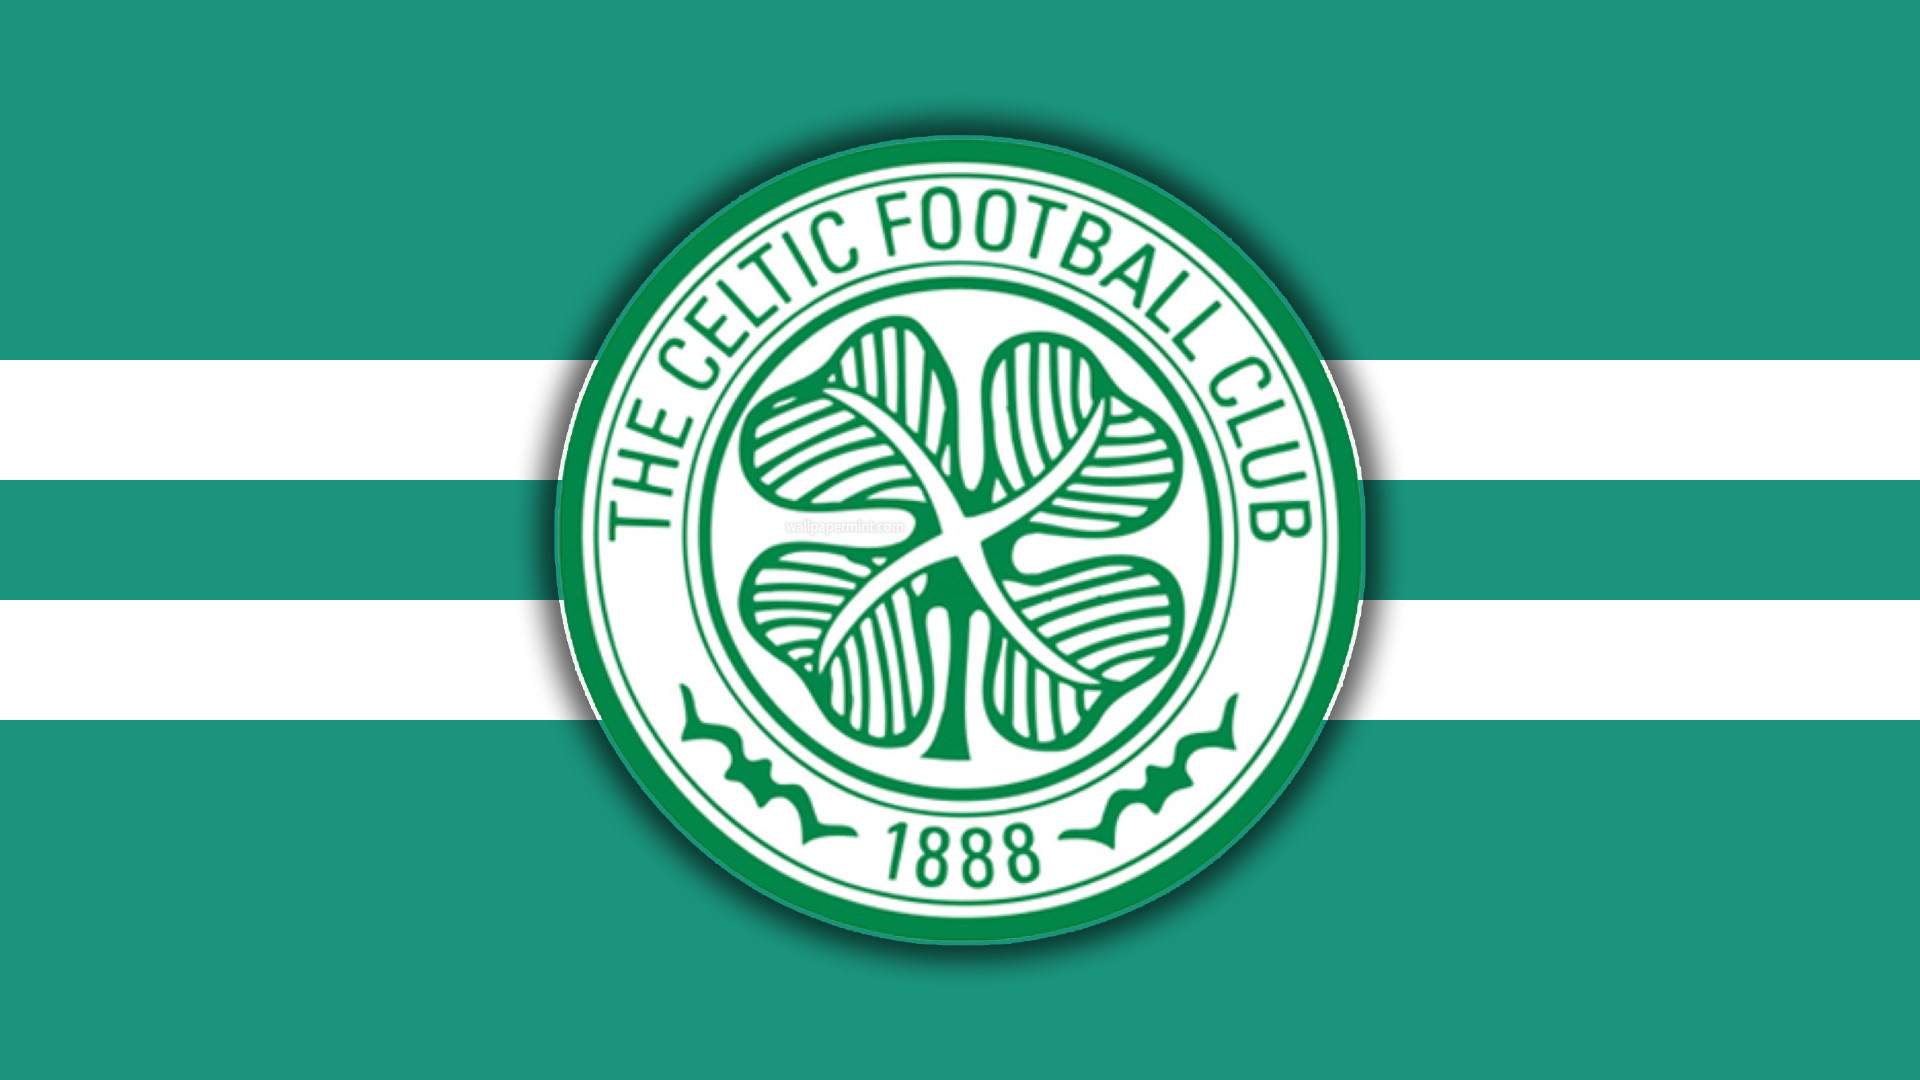 1920x1080 - Celtic F.C. Wallpapers 15